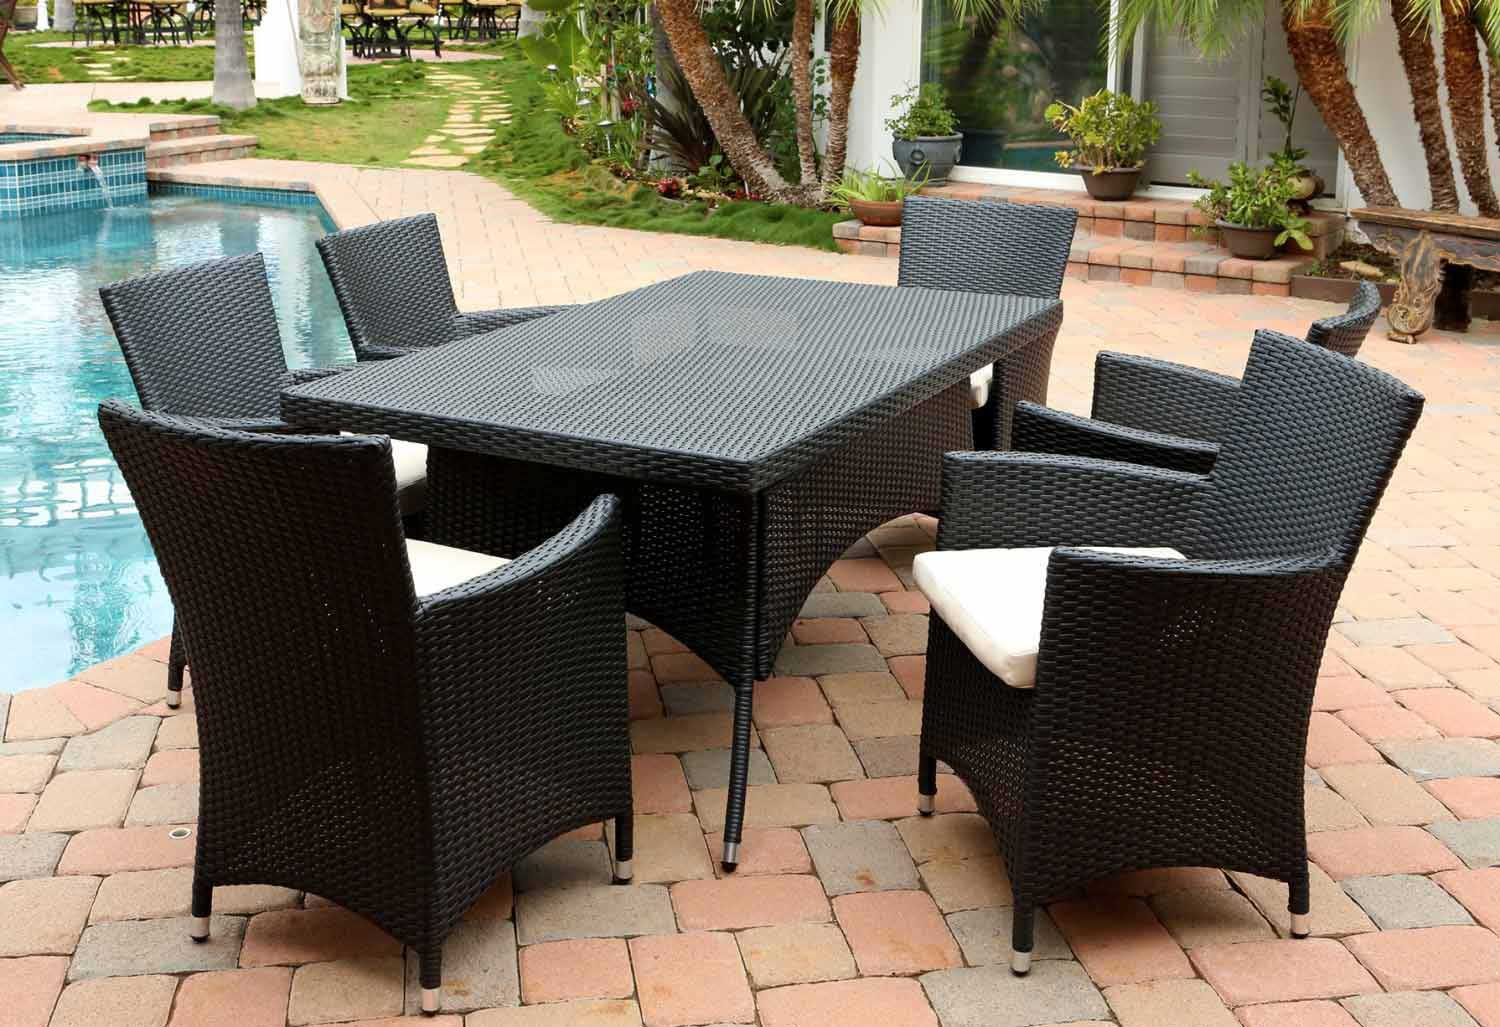 Abbyson Living Pasadena Outdoor Wicker 7 Piece Dining Set - Black